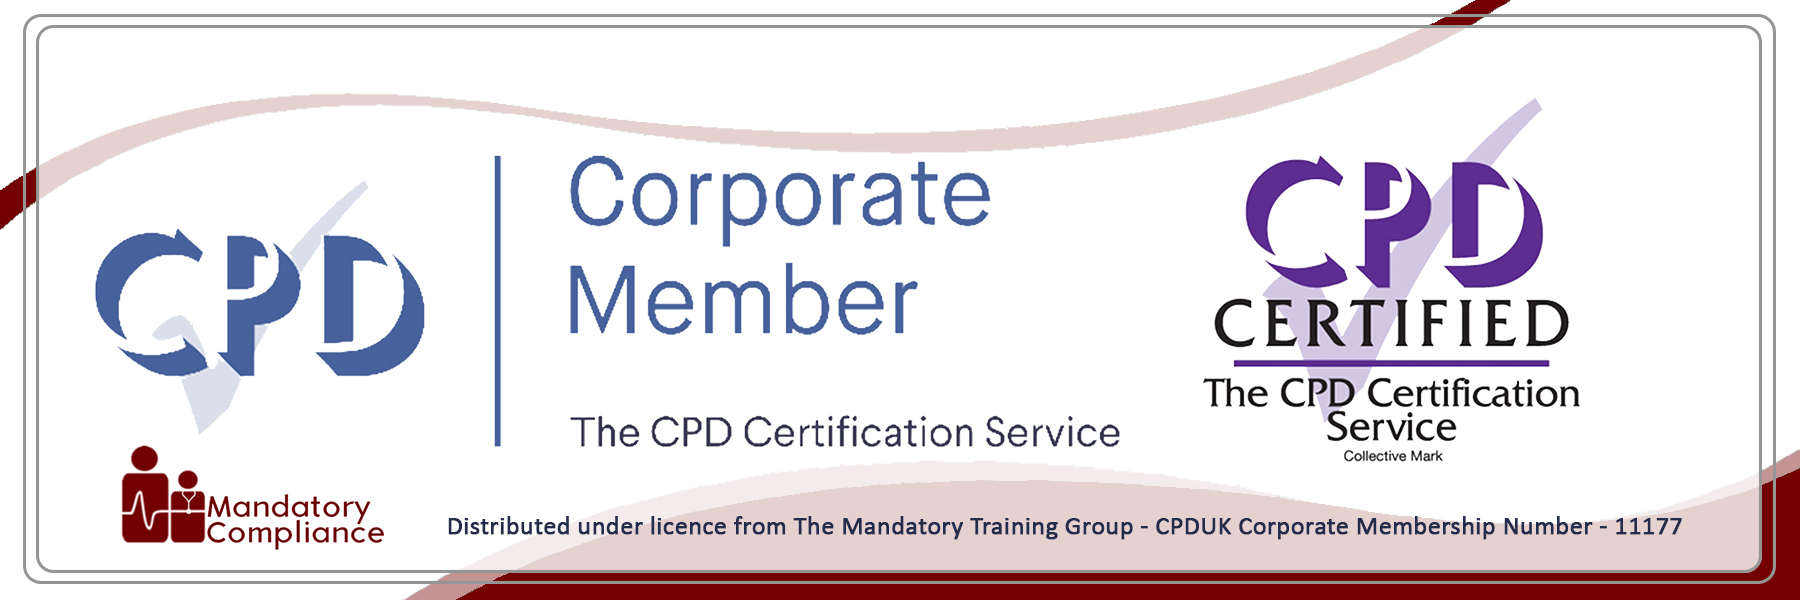 Personal Money Management - Online Learning Courses - E-Learning Courses - Mandatory Compliance UK---